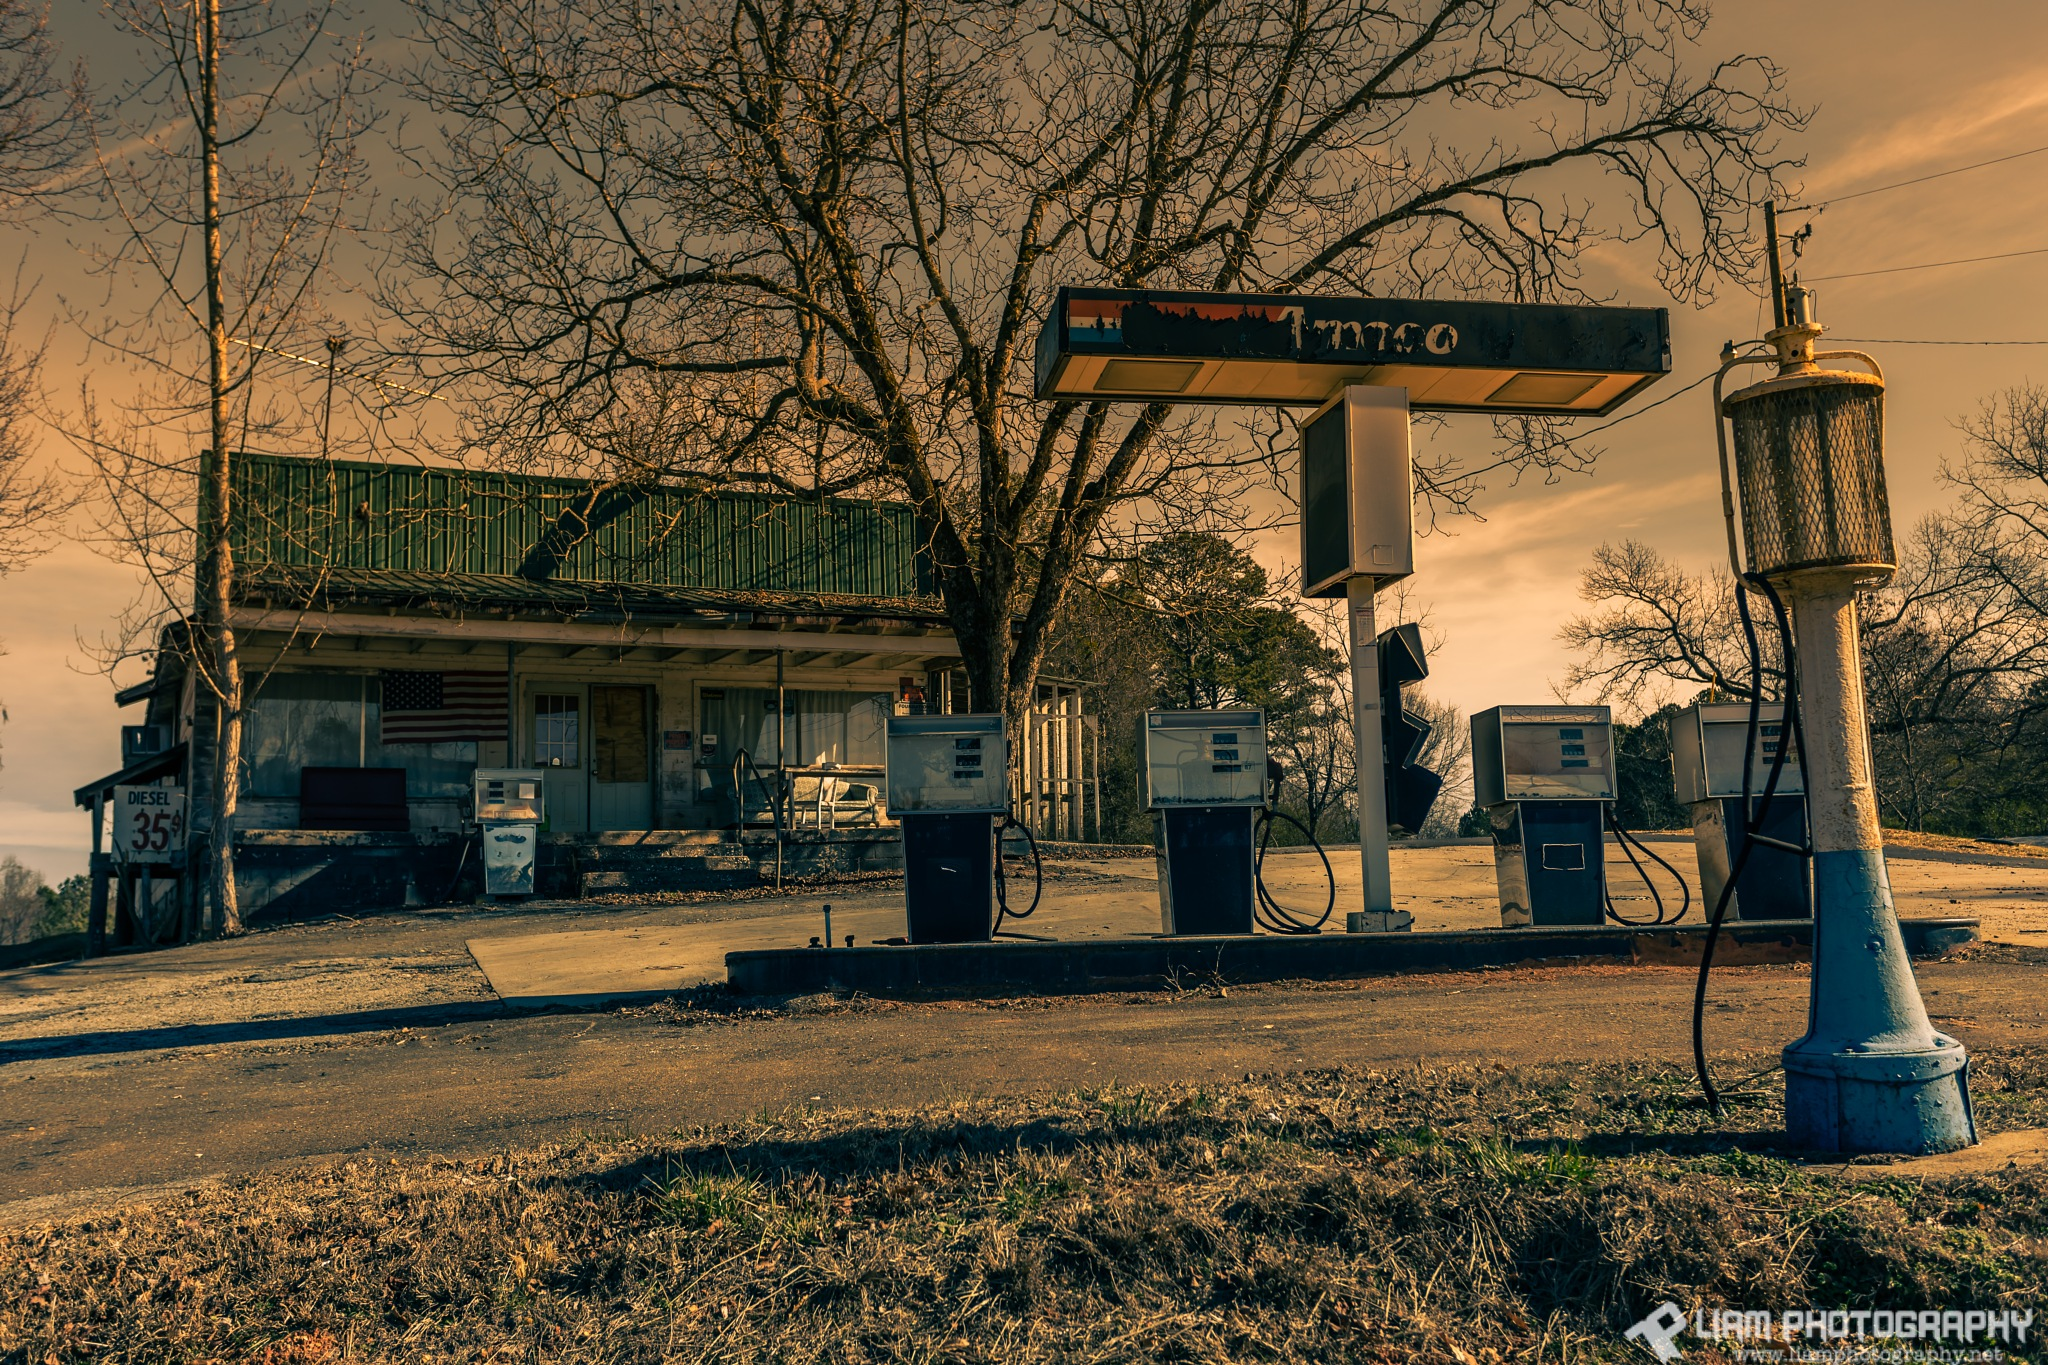 Old Amoco by Liam Photography